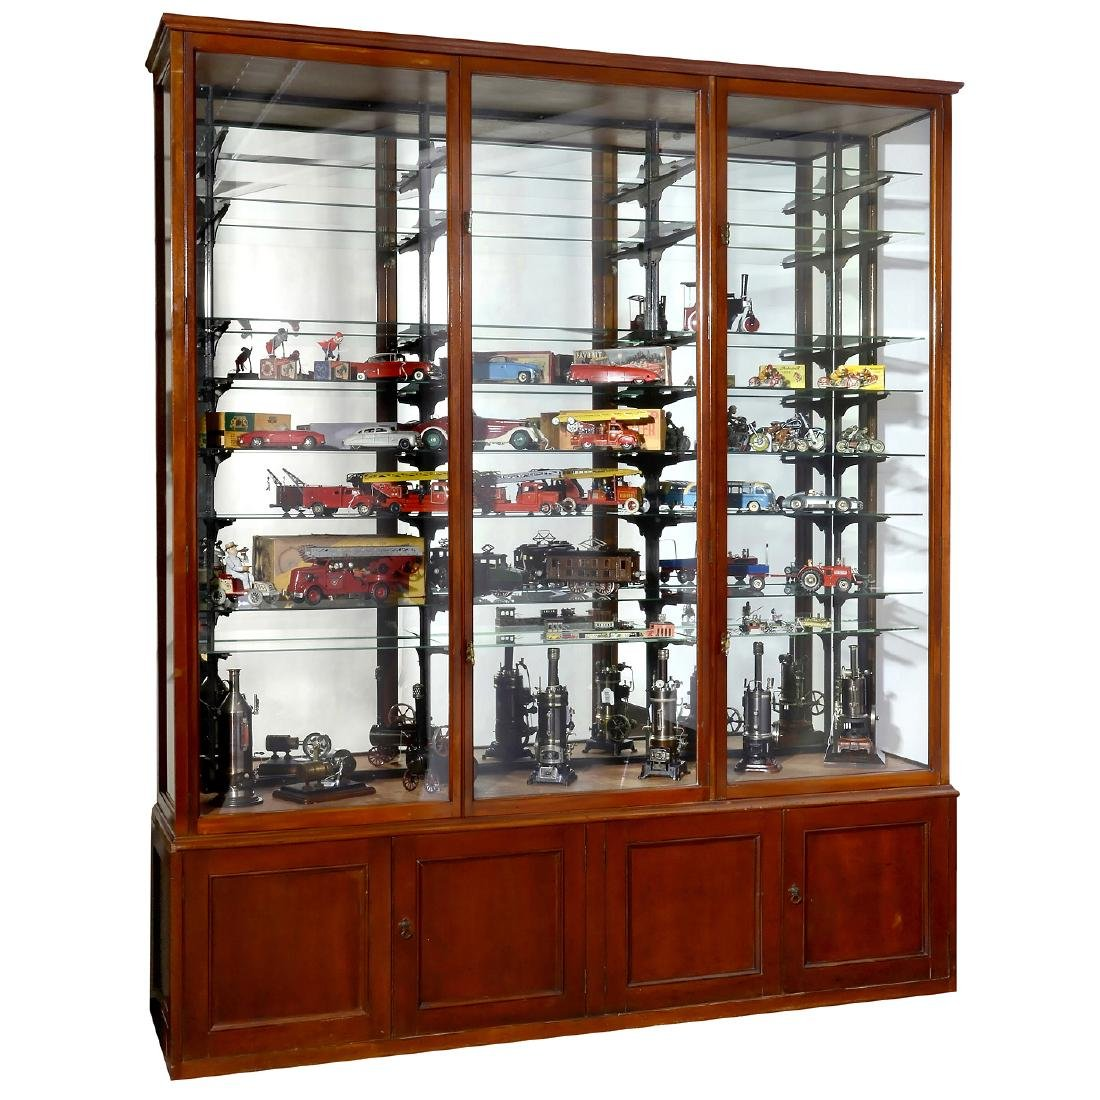 English Mahogany Display Cabinet, second half of 19th